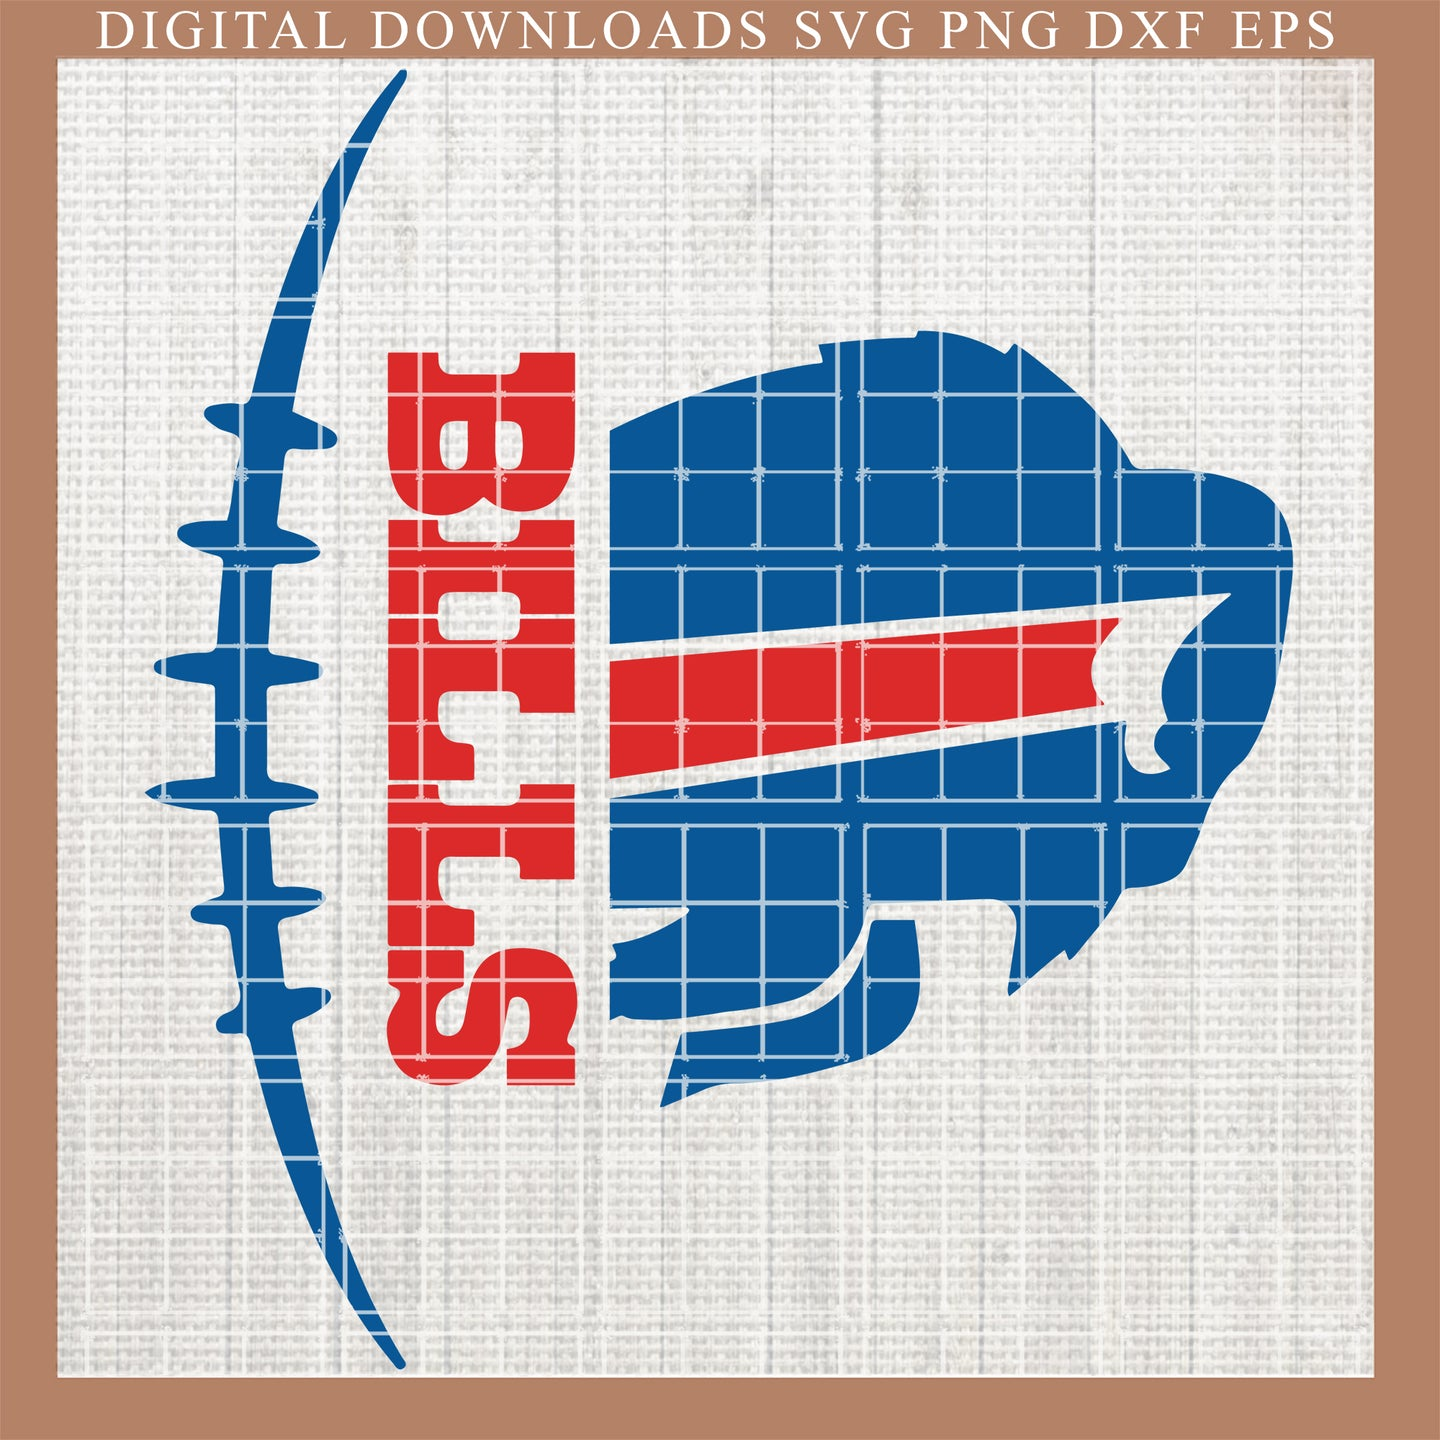 Buffalo Bills svg, skull svg, fueled by svg , Bills , Bills svg, Bills football , Bills nlf , Fingerprints, DNA, NFL